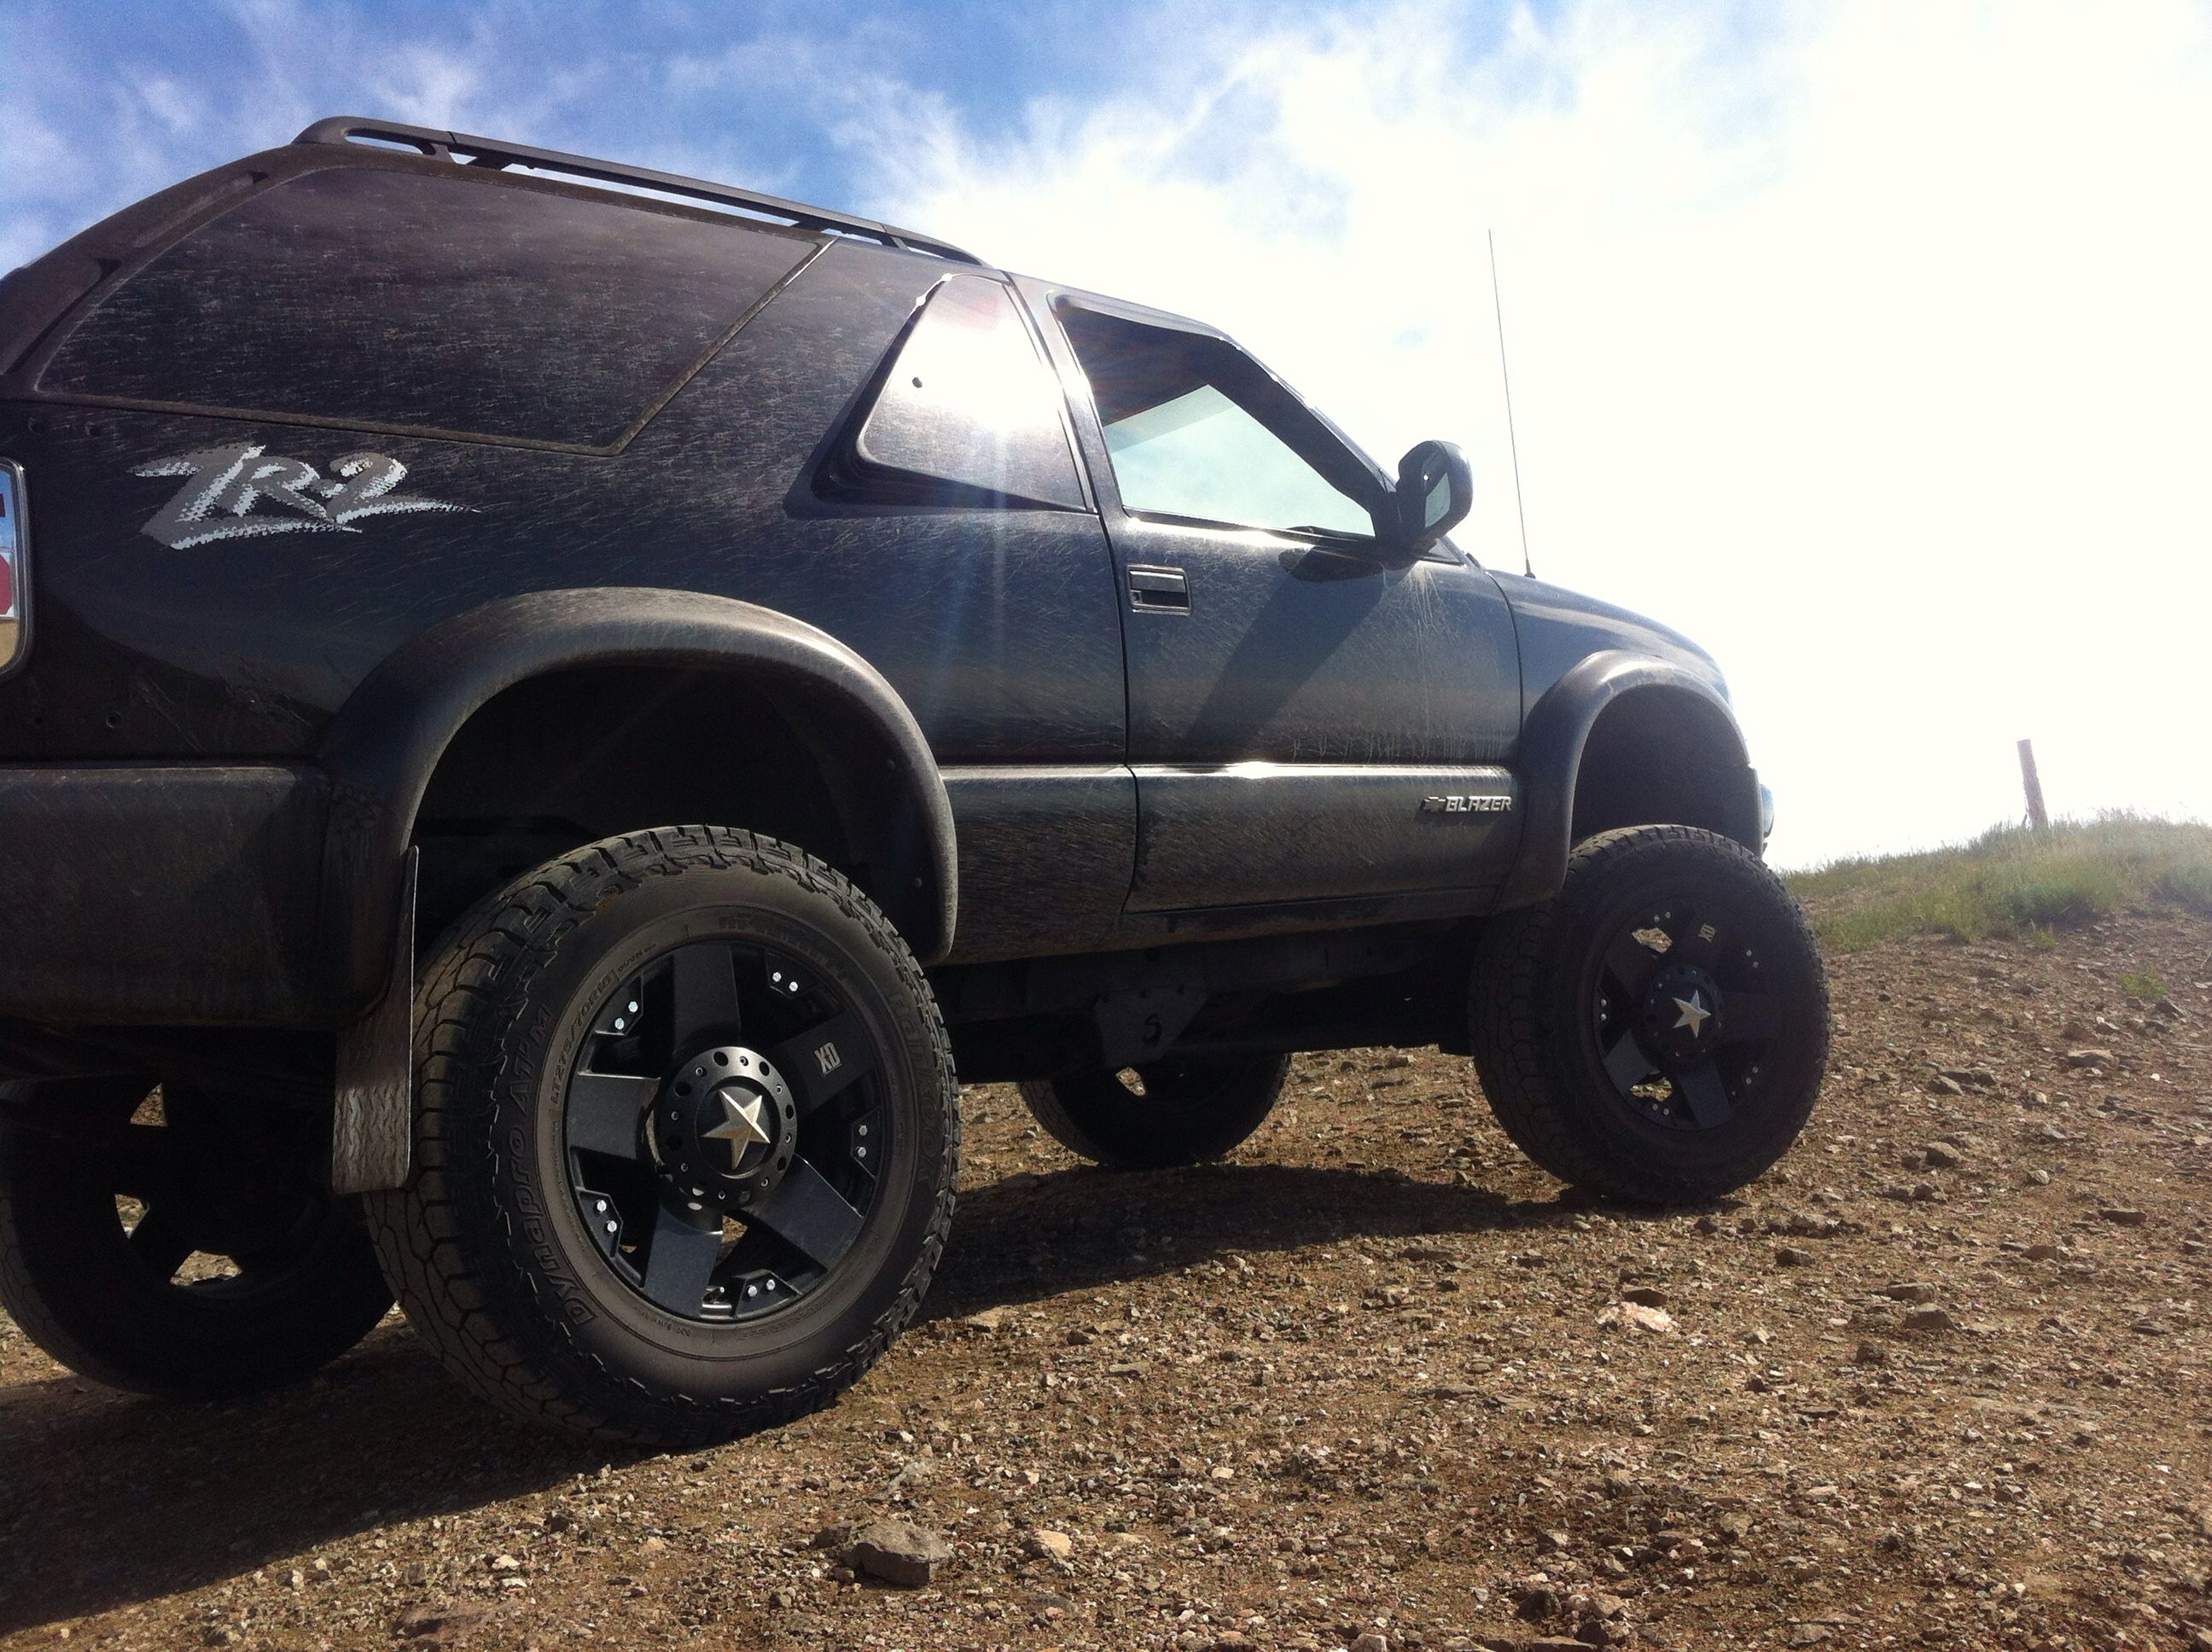 hight resolution of 04 chevy blazer with 6 inch super lift and 18 inch kmc rockstars sick